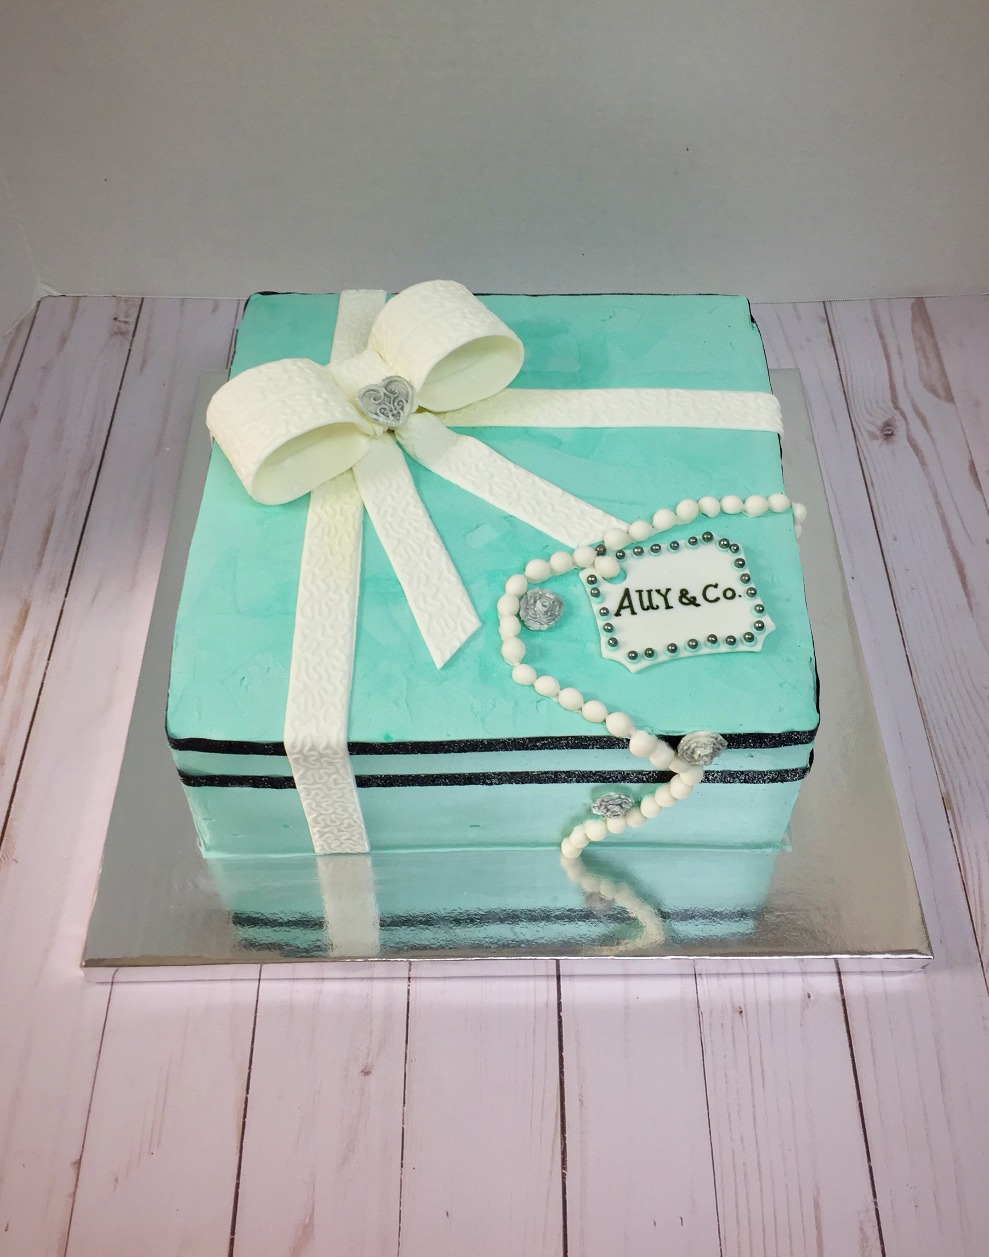 Tiffany & Co. Bridal Shower Cake